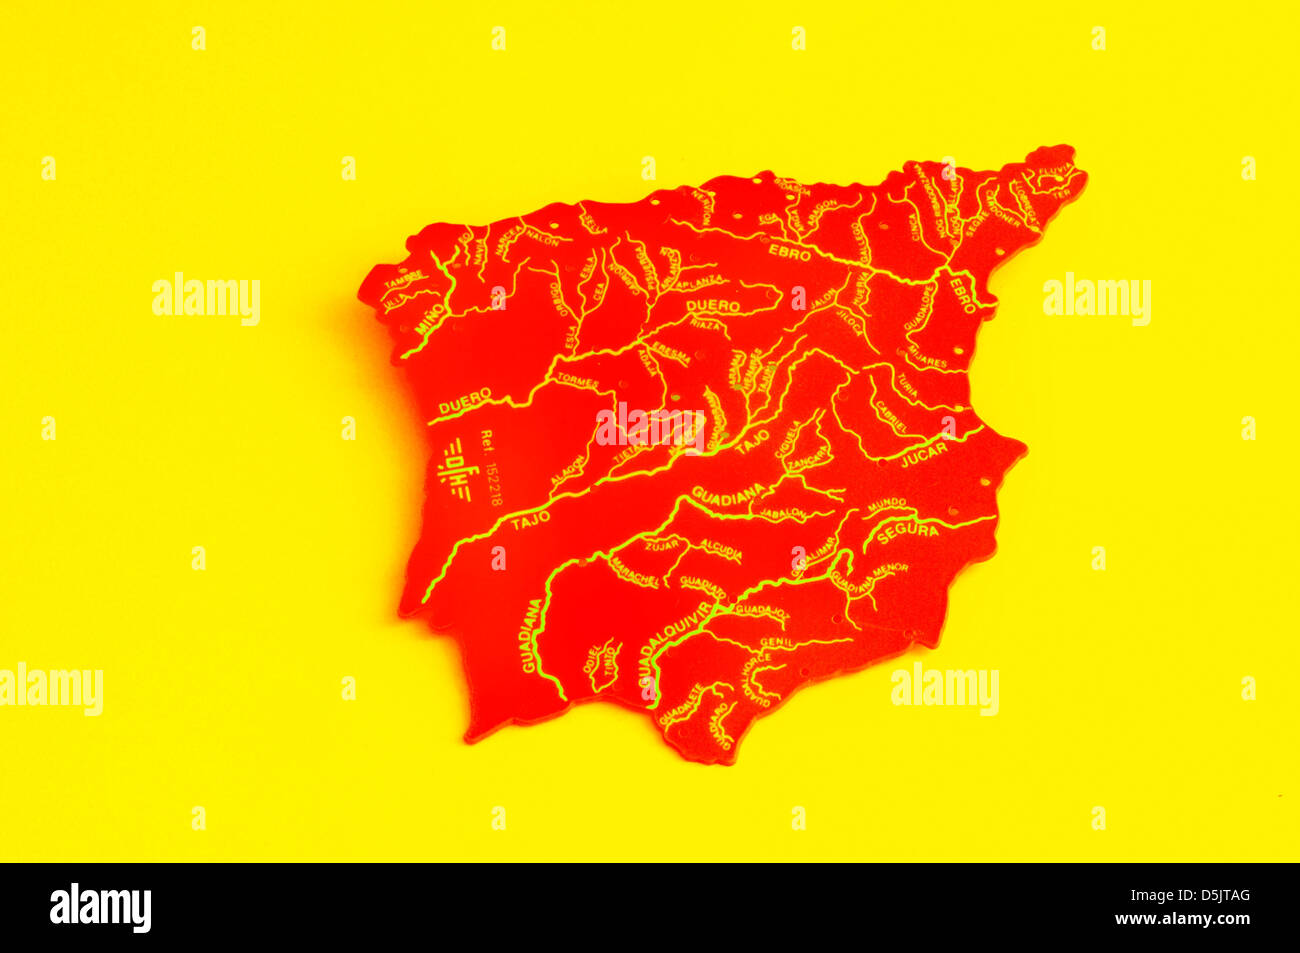 Country Of Spain Map.Spain Map Yellow Red Country European Country Cee Stock Photo